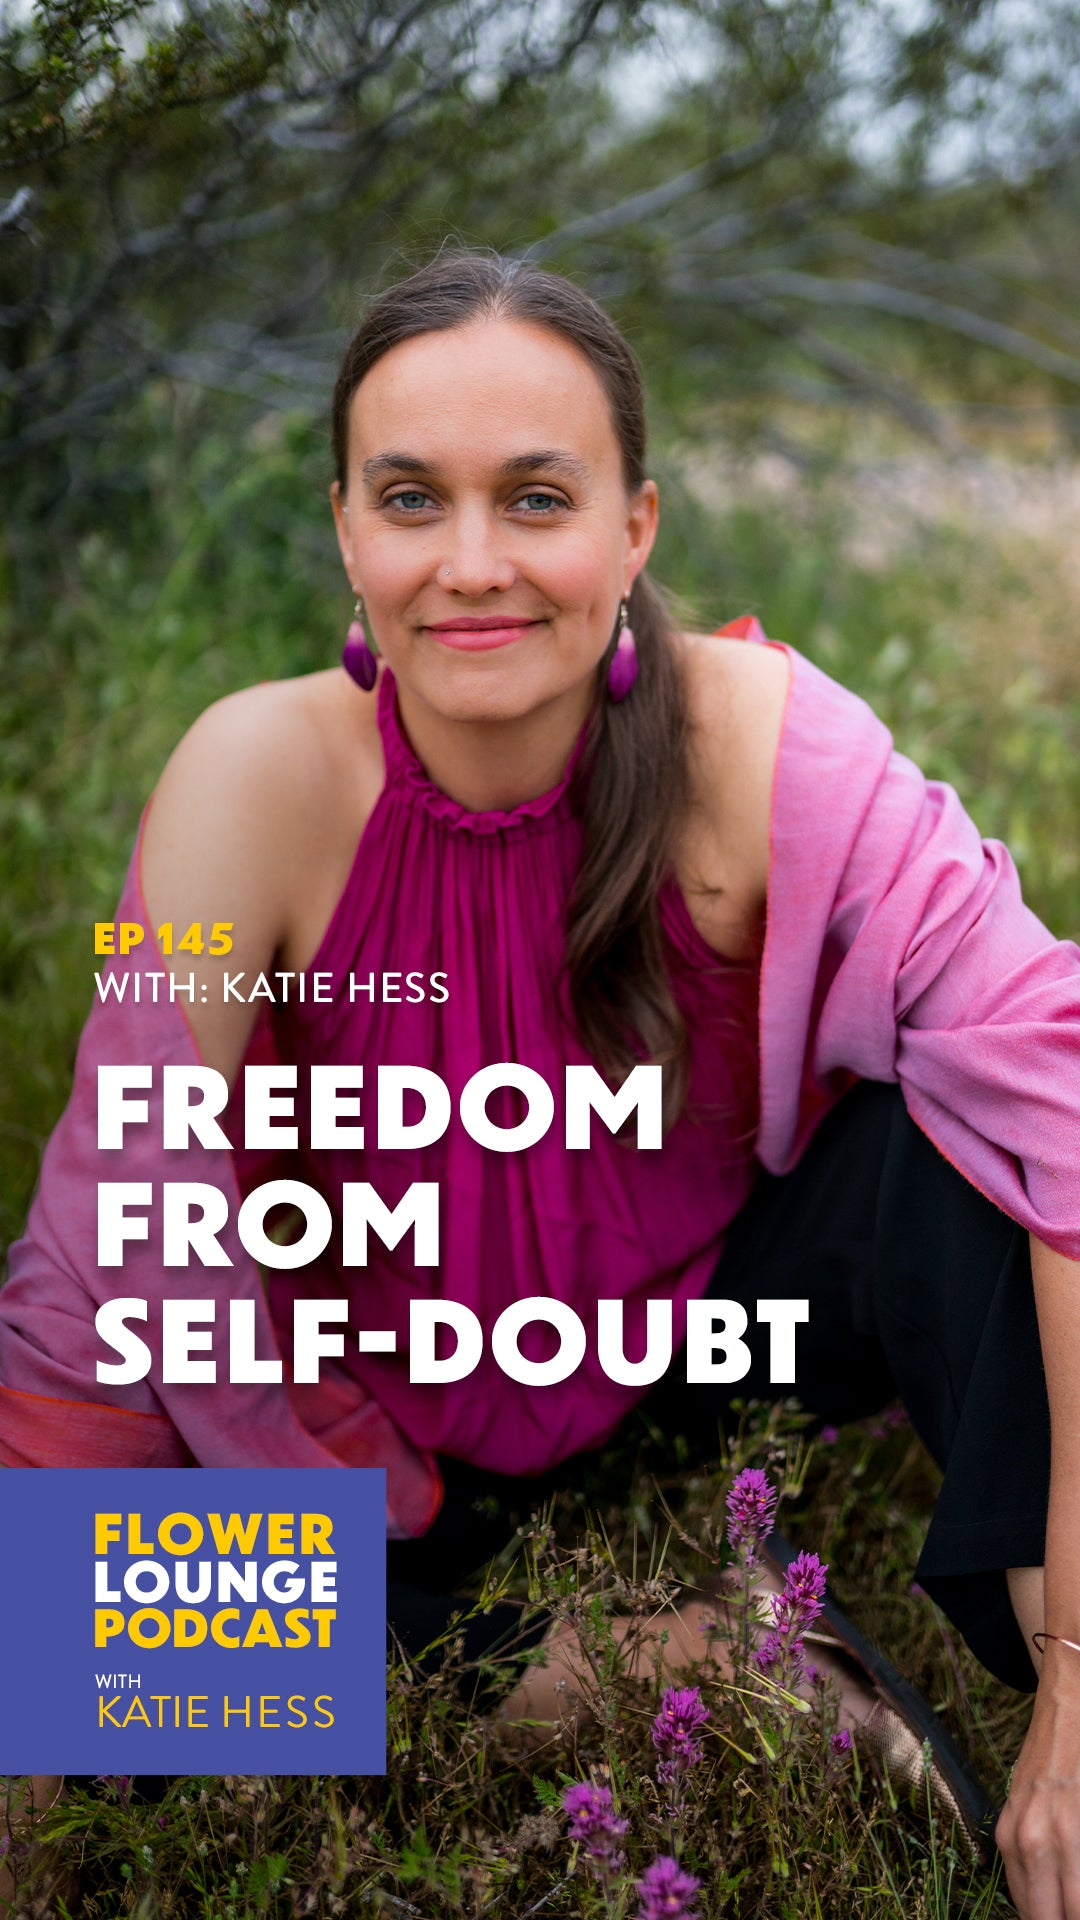 Freedom from Self Doubt with Katie Hess on the Flowerlounge